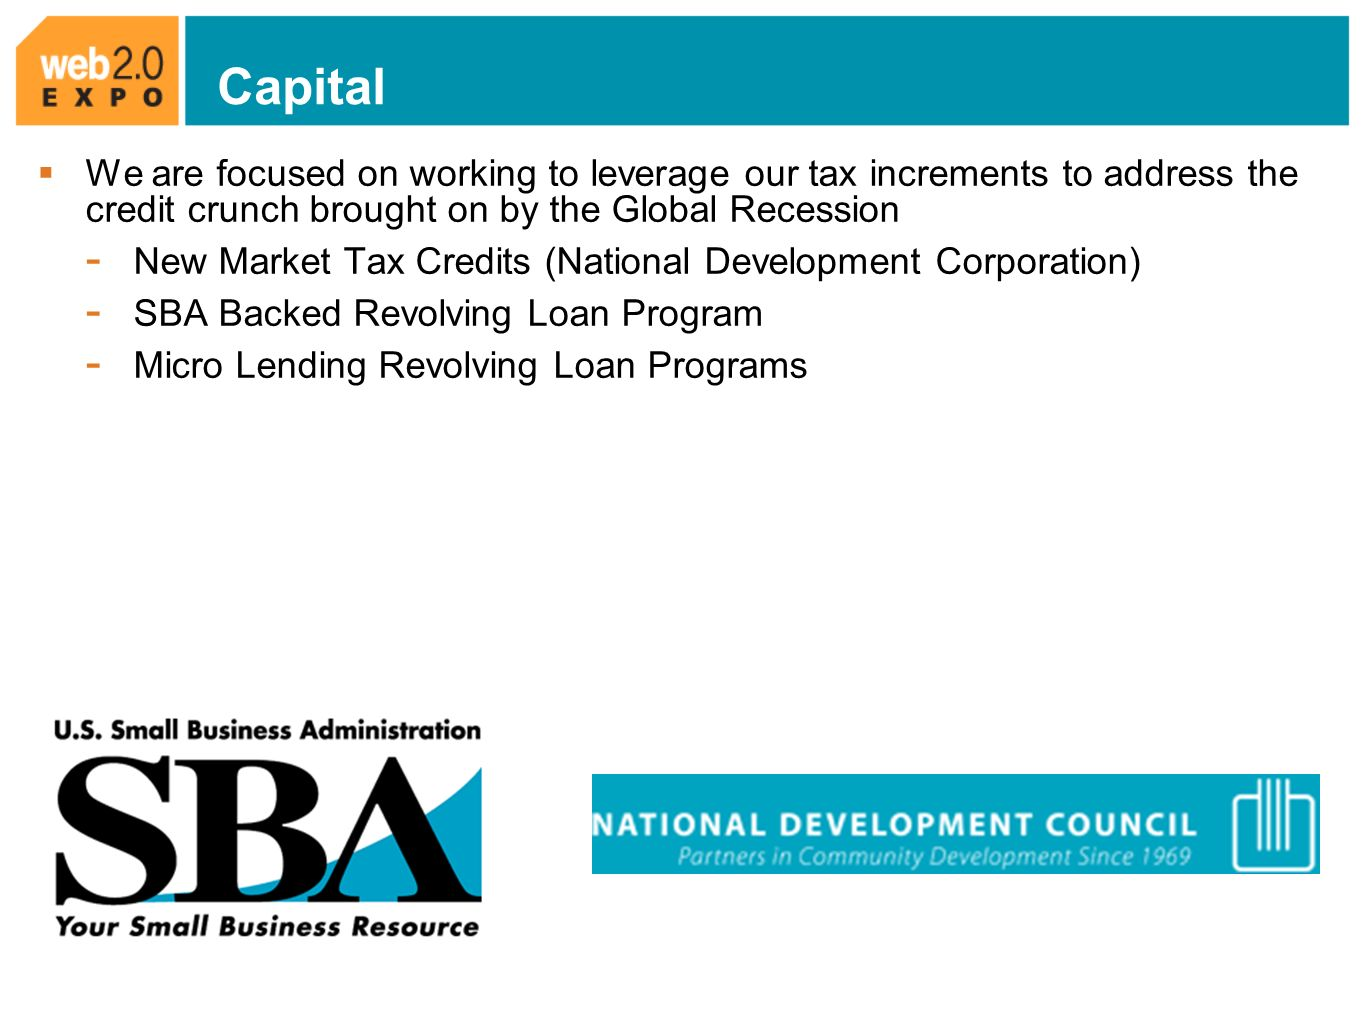 Capital We are focused on working to leverage our tax increments to address the credit crunch brought on by the Global Recession - New Market Tax Credits (National Development Corporation) - SBA Backed Revolving Loan Program - Micro Lending Revolving Loan Programs